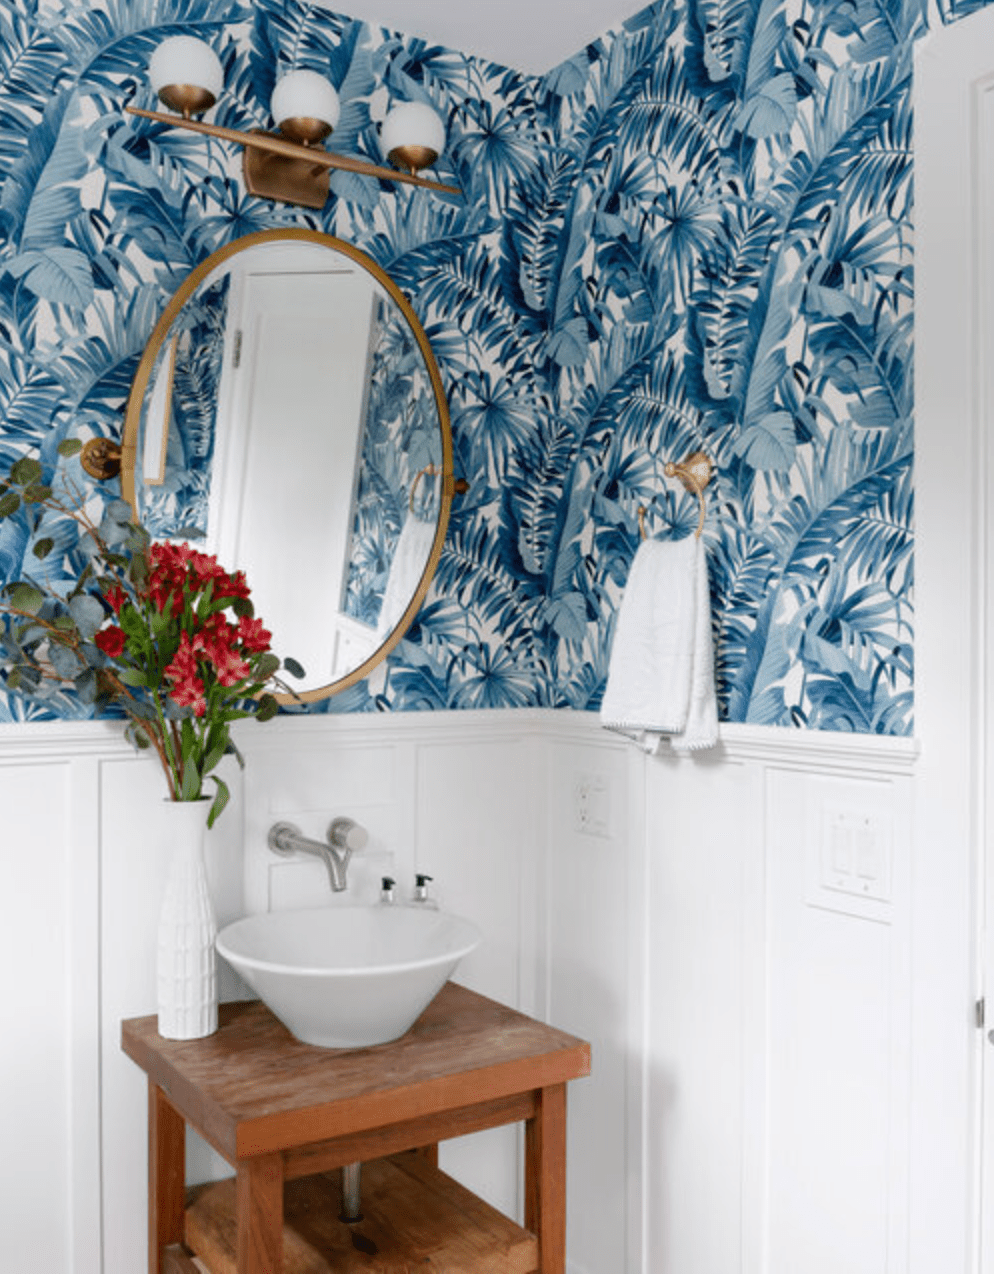 Moderin bathroom with mixed metal fixtures, blue palm leaf patterned wallpaper